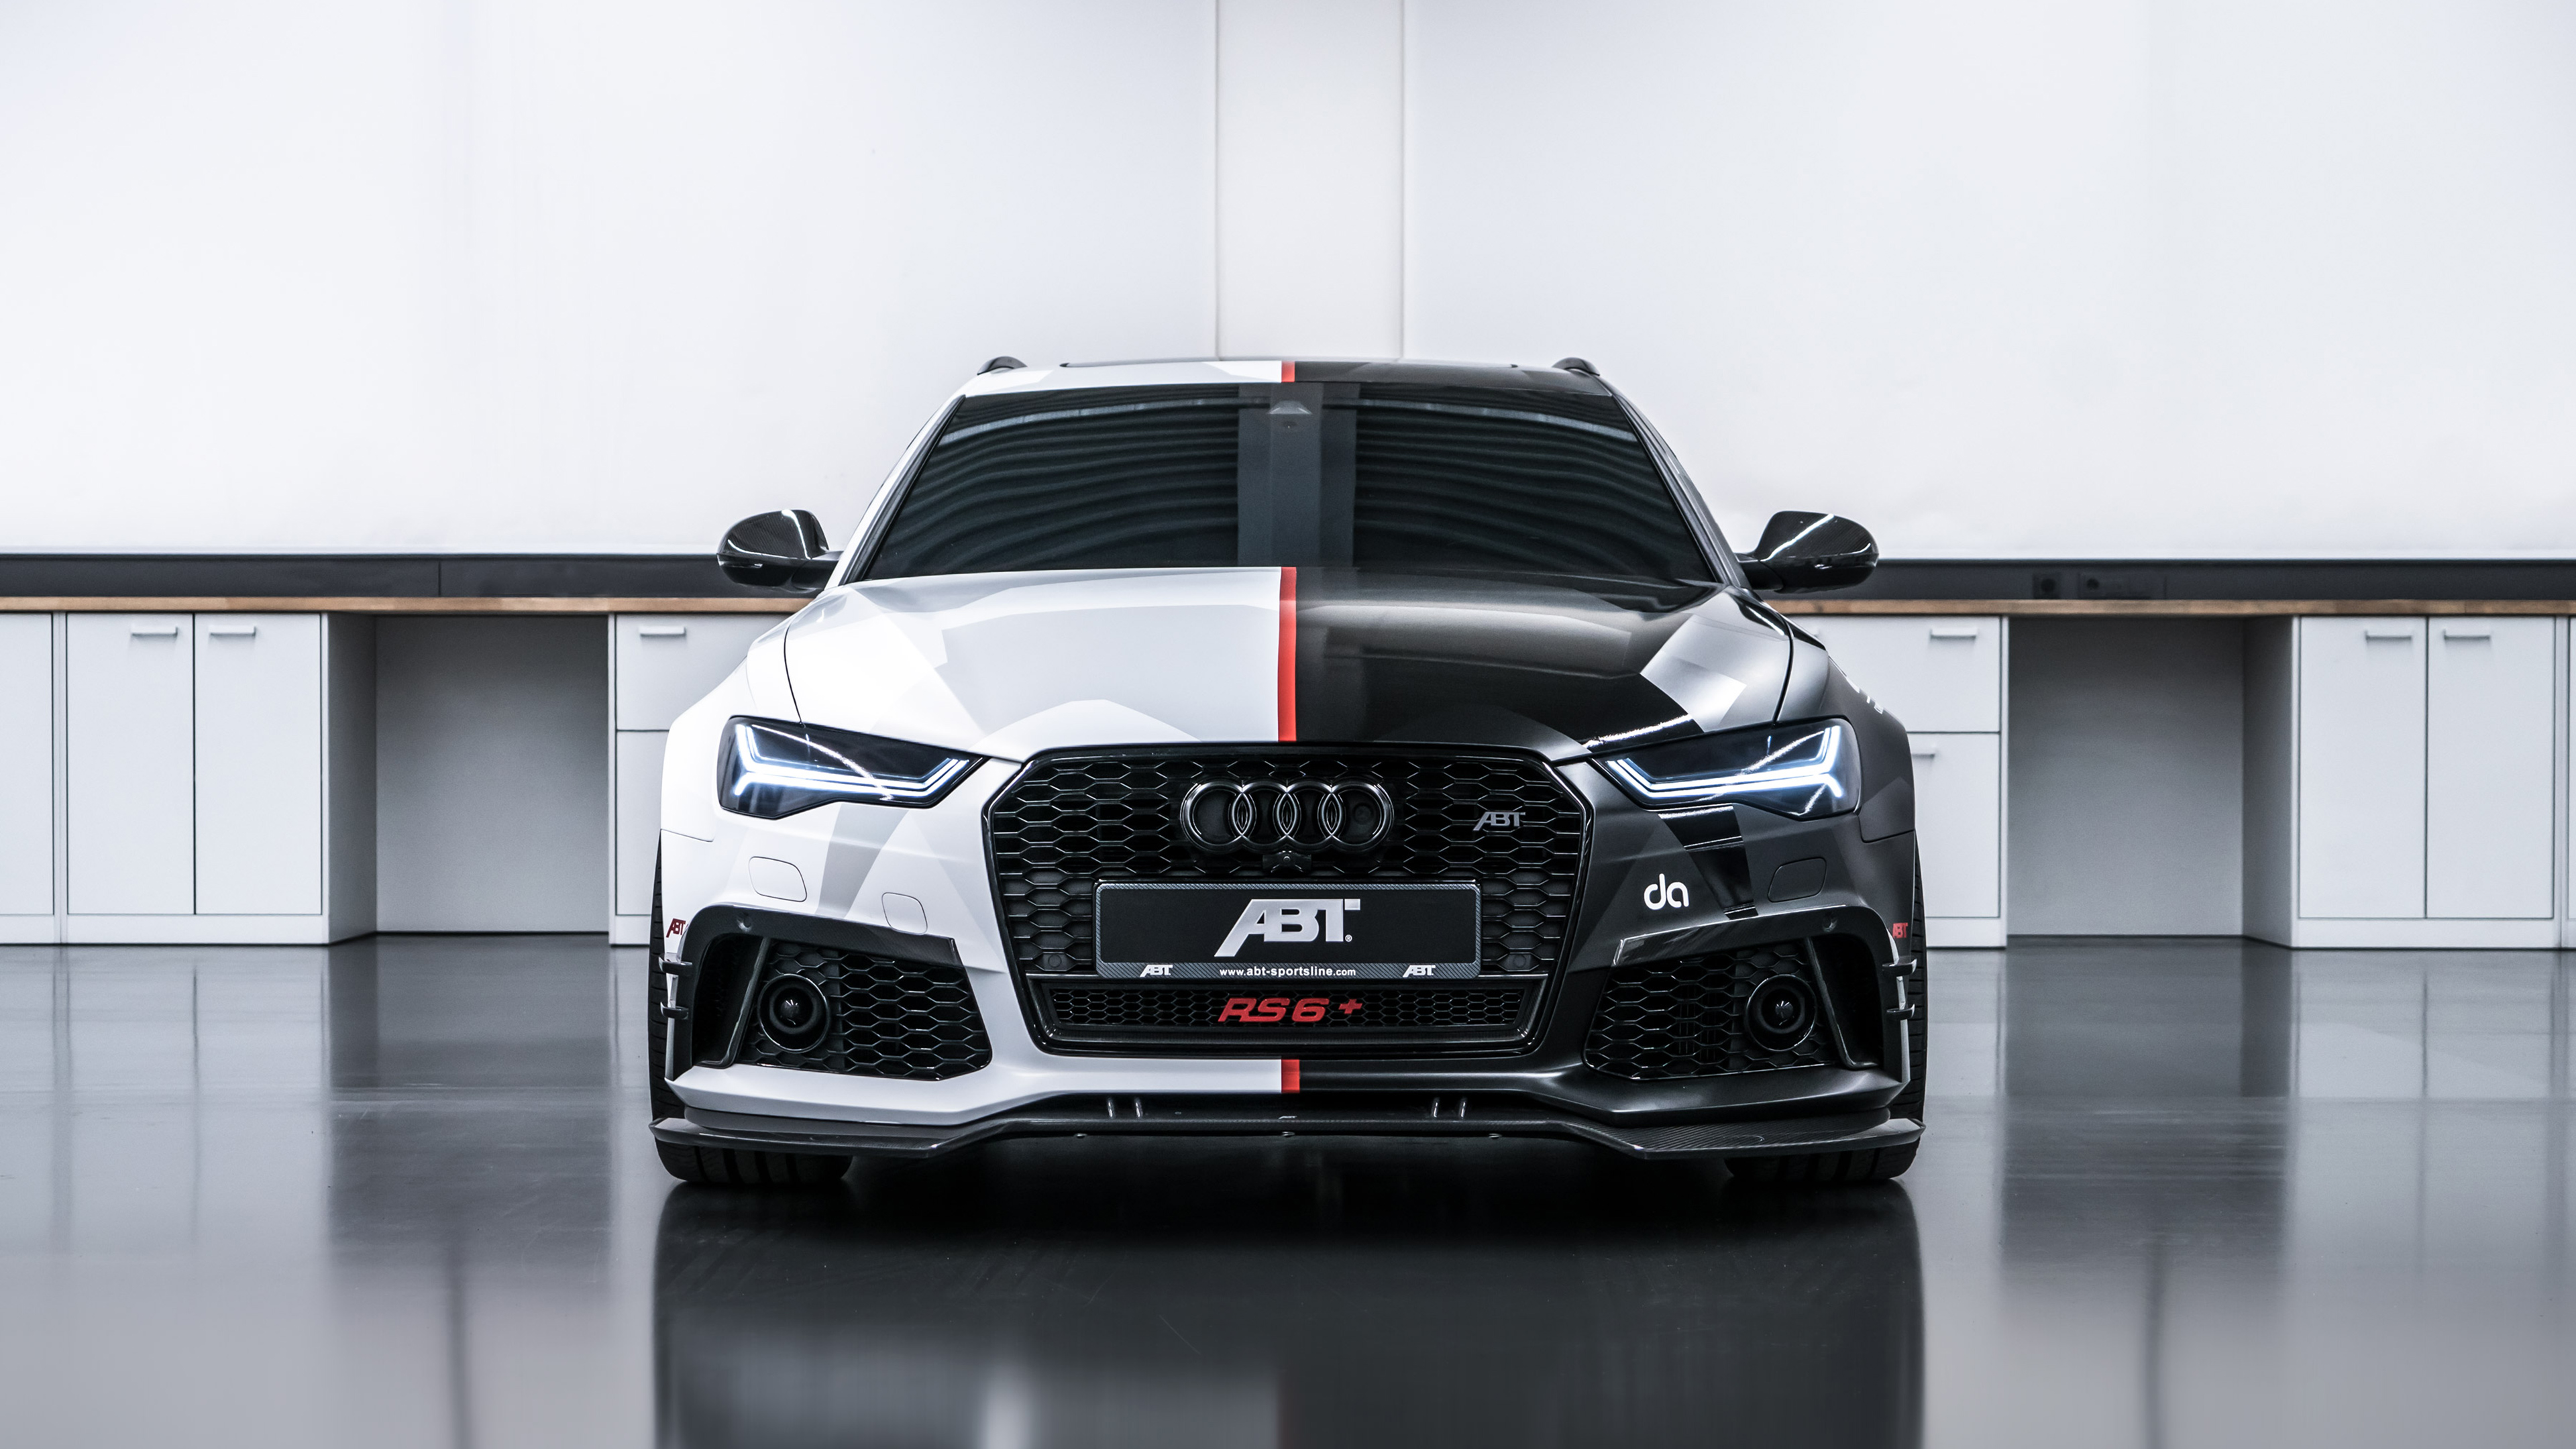 3840x2160 - Audi RS6 Wallpapers 3